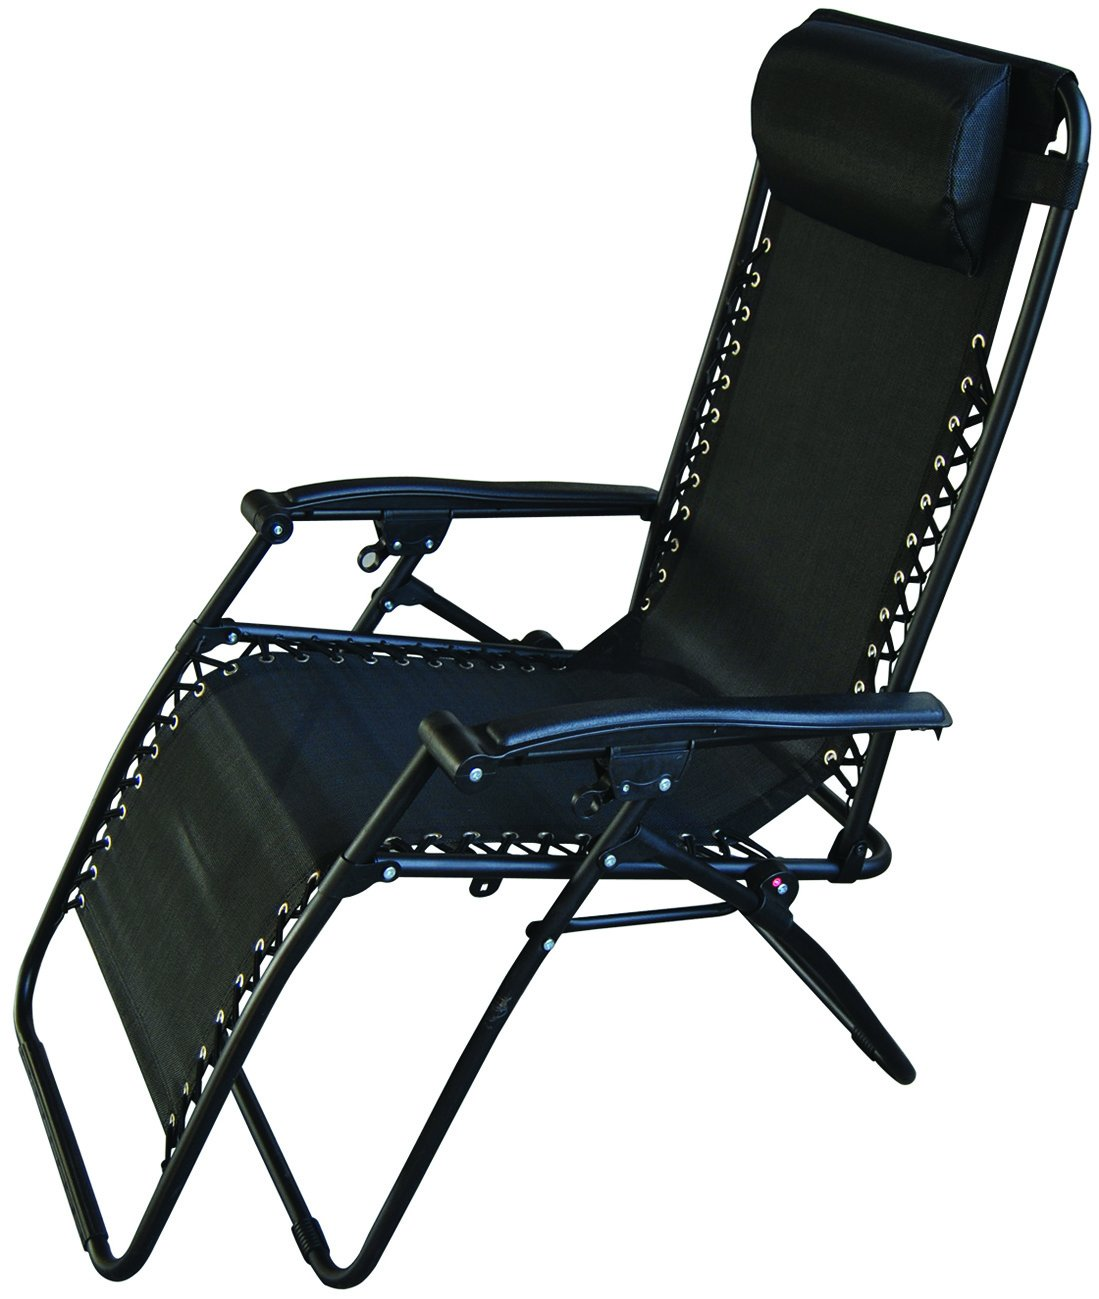 Redwood Leisure Textilene Reclining Chair   Black: Amazon.co.uk: Garden U0026  Outdoors